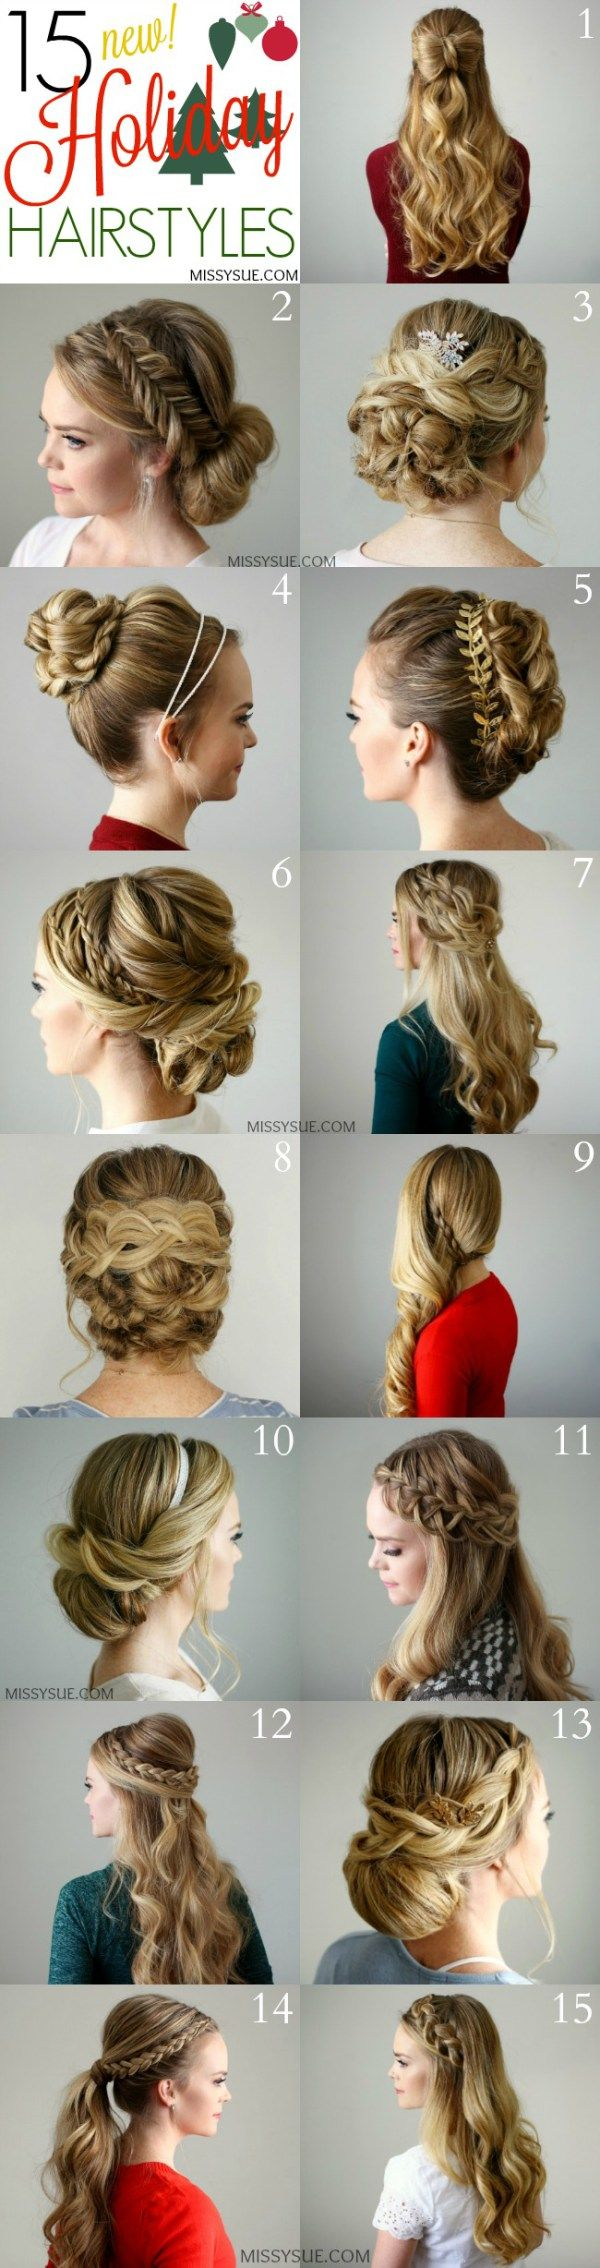 Awesome 1000 Ideas About Christmas Hairstyles On Pinterest Hairstyles Short Hairstyles Gunalazisus